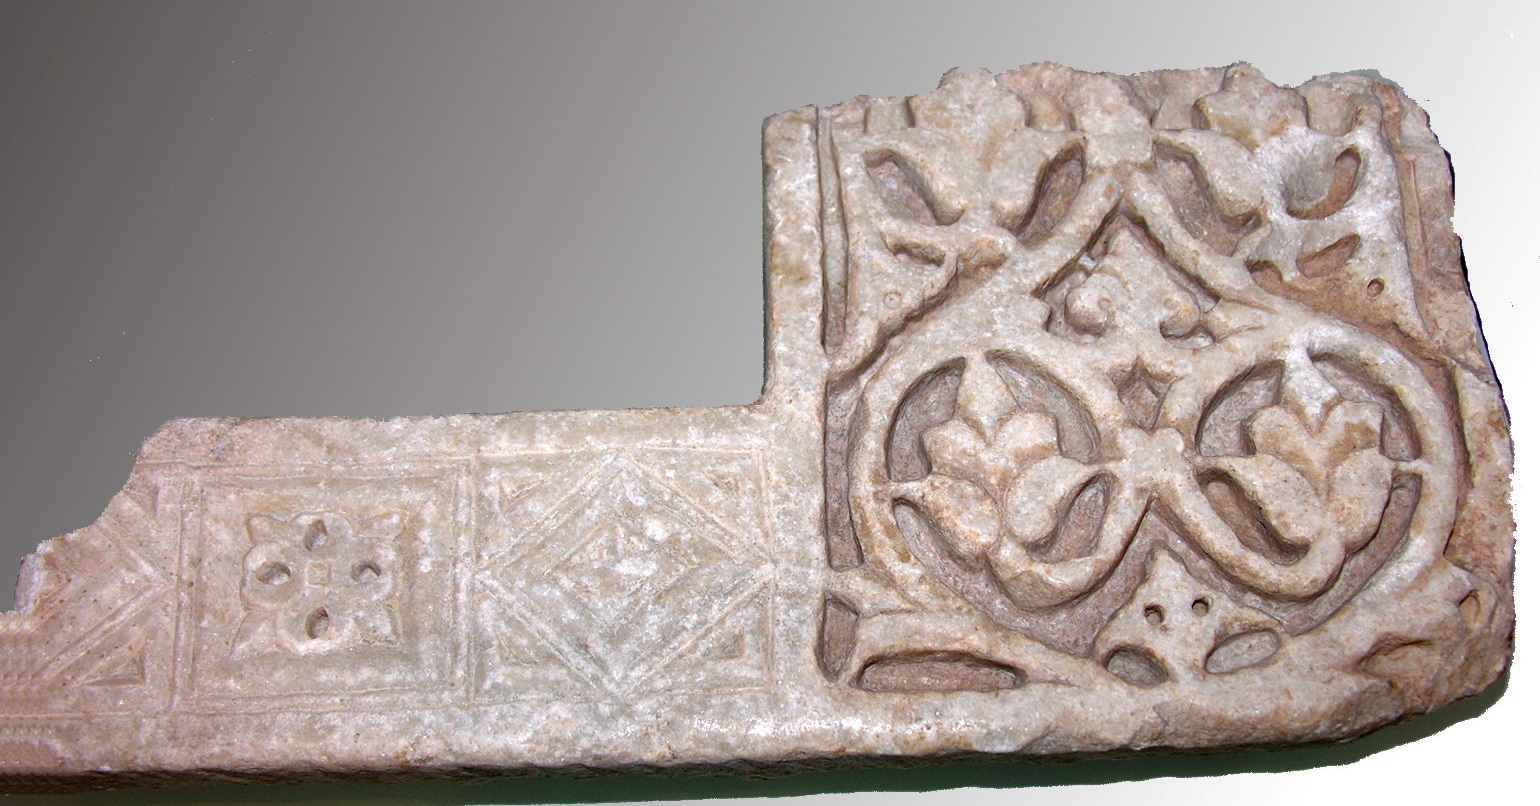 CARVED STONE FRIEZE FROM THE CALIPHATE PERIOD